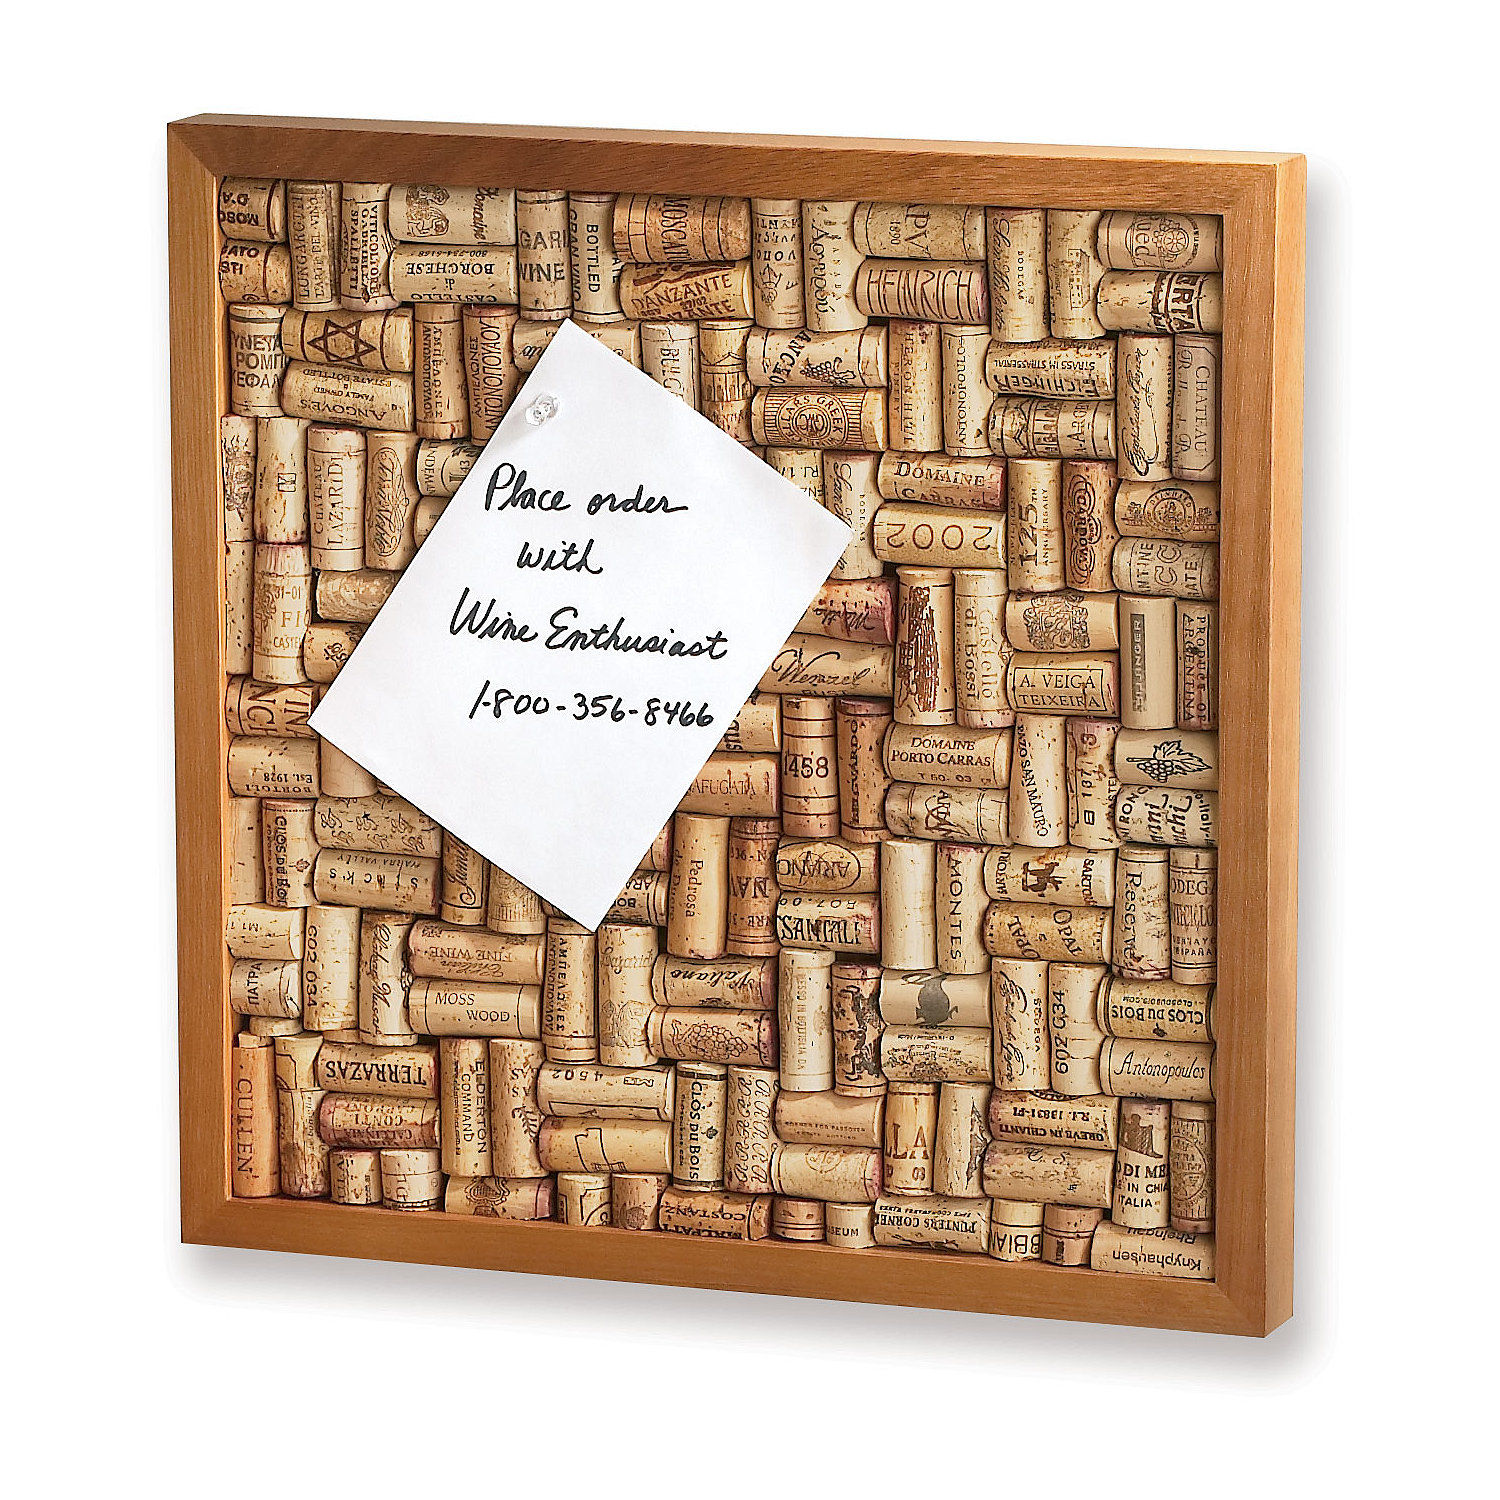 Wine Cork Board Kit - Wine Enthusiast